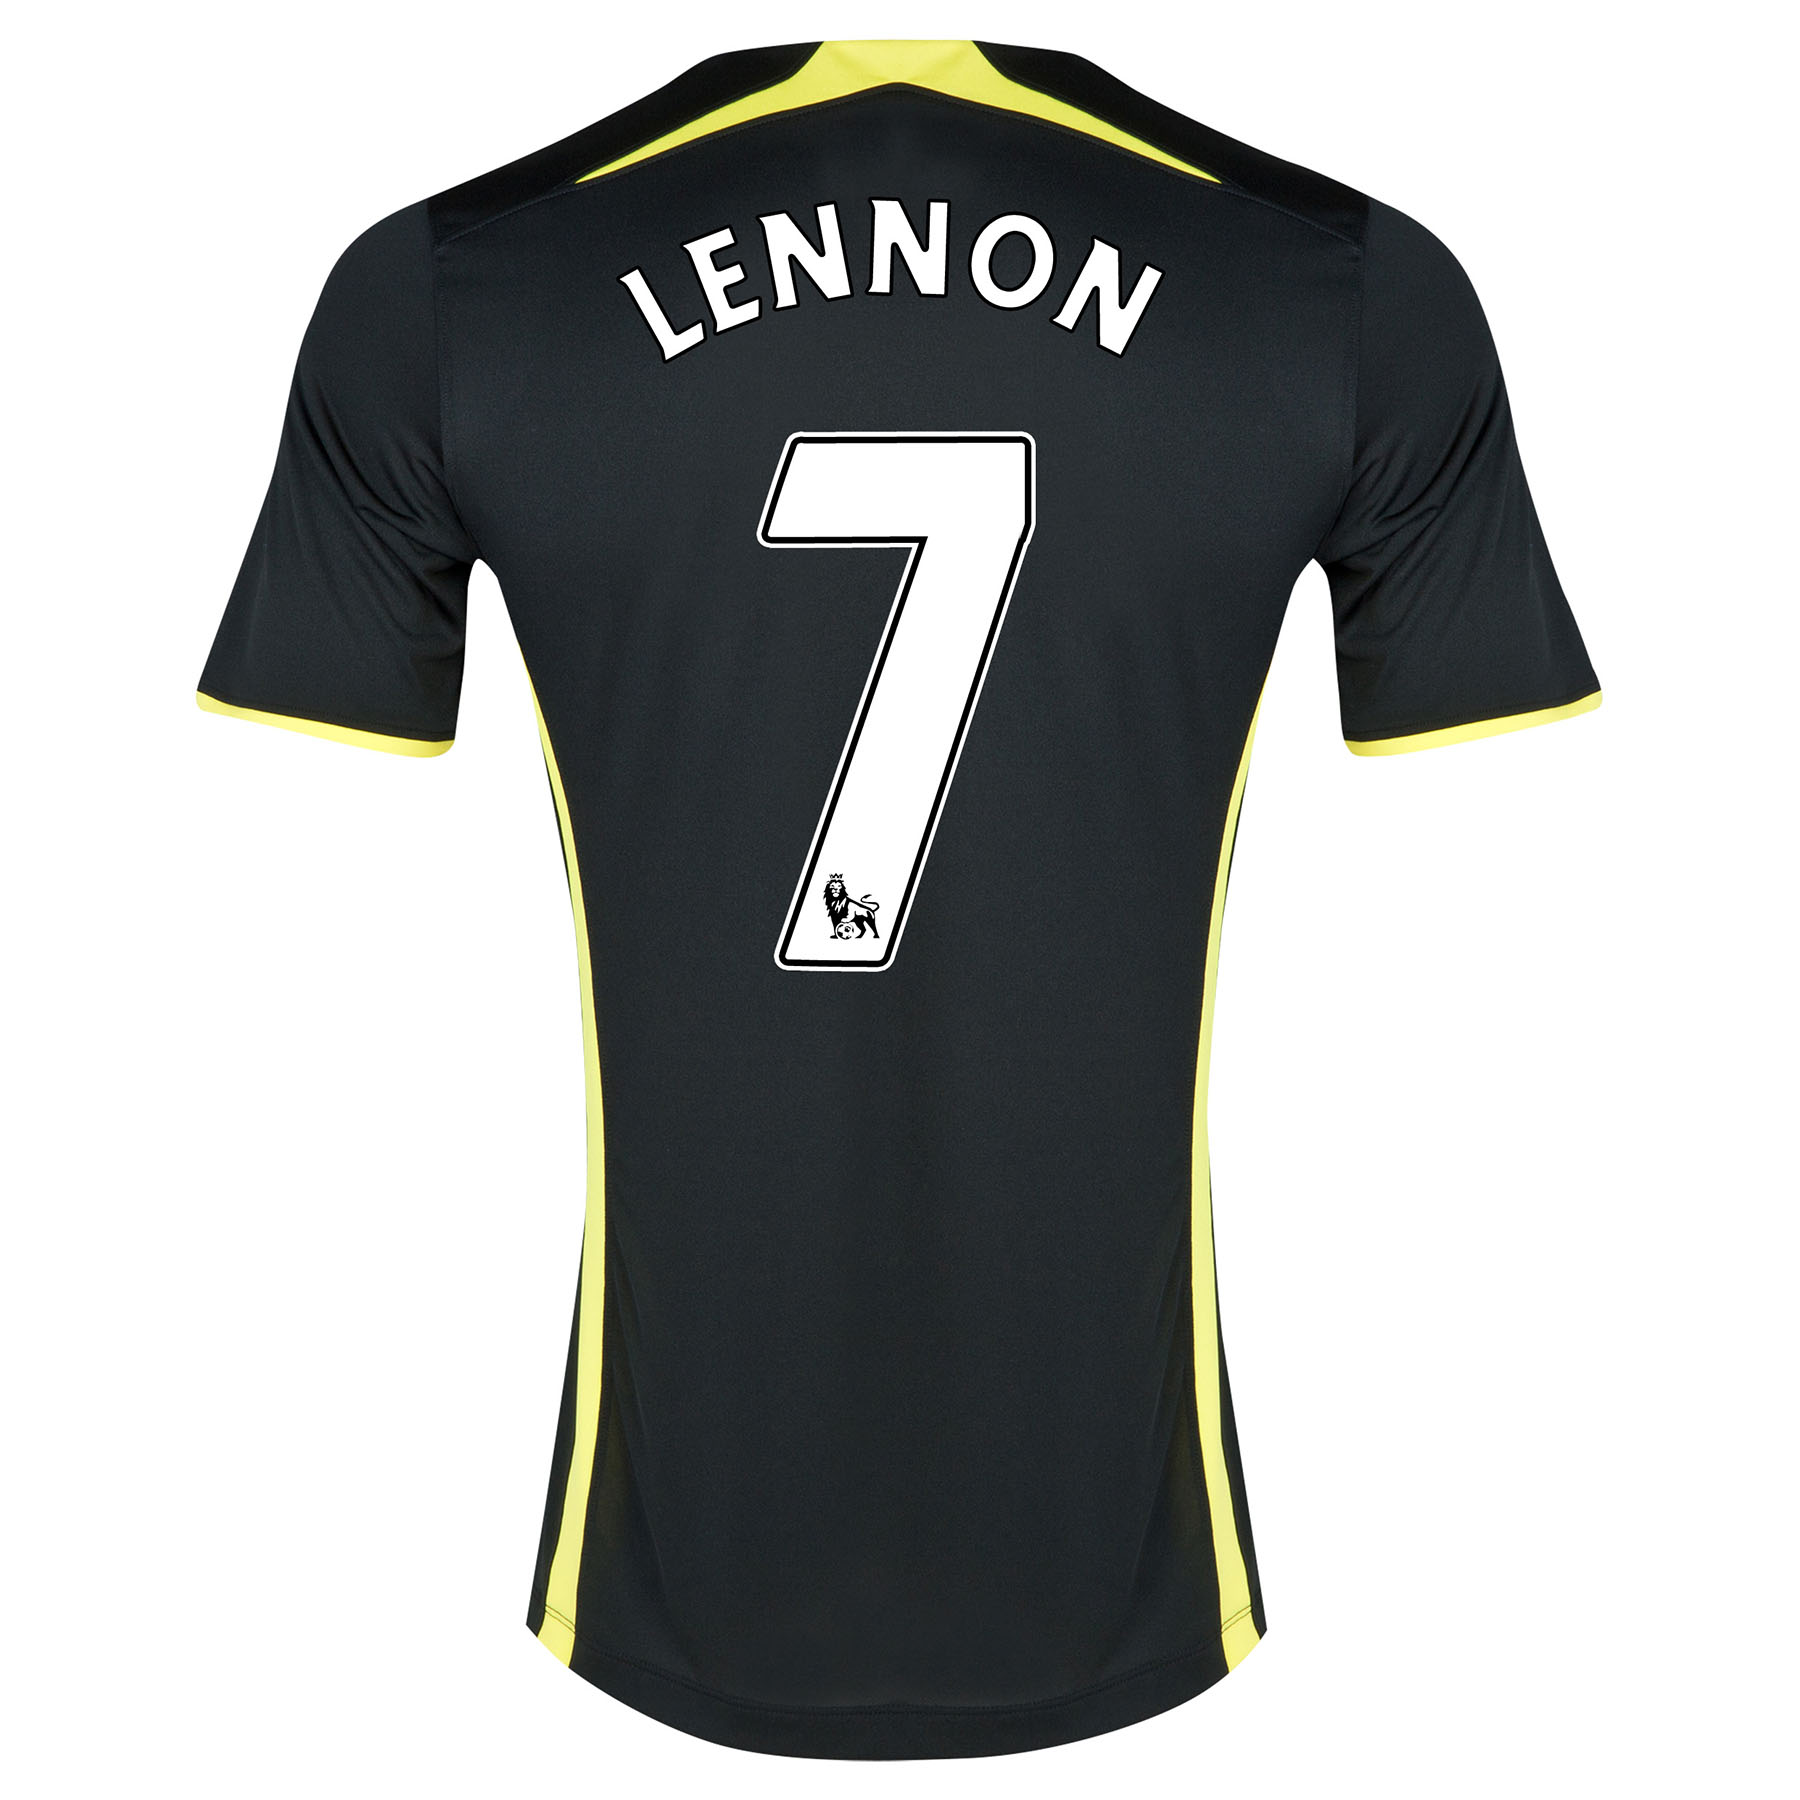 Tottenham Hotspur Away Shirt 2014/15 - Womens with Lennon 7 printing